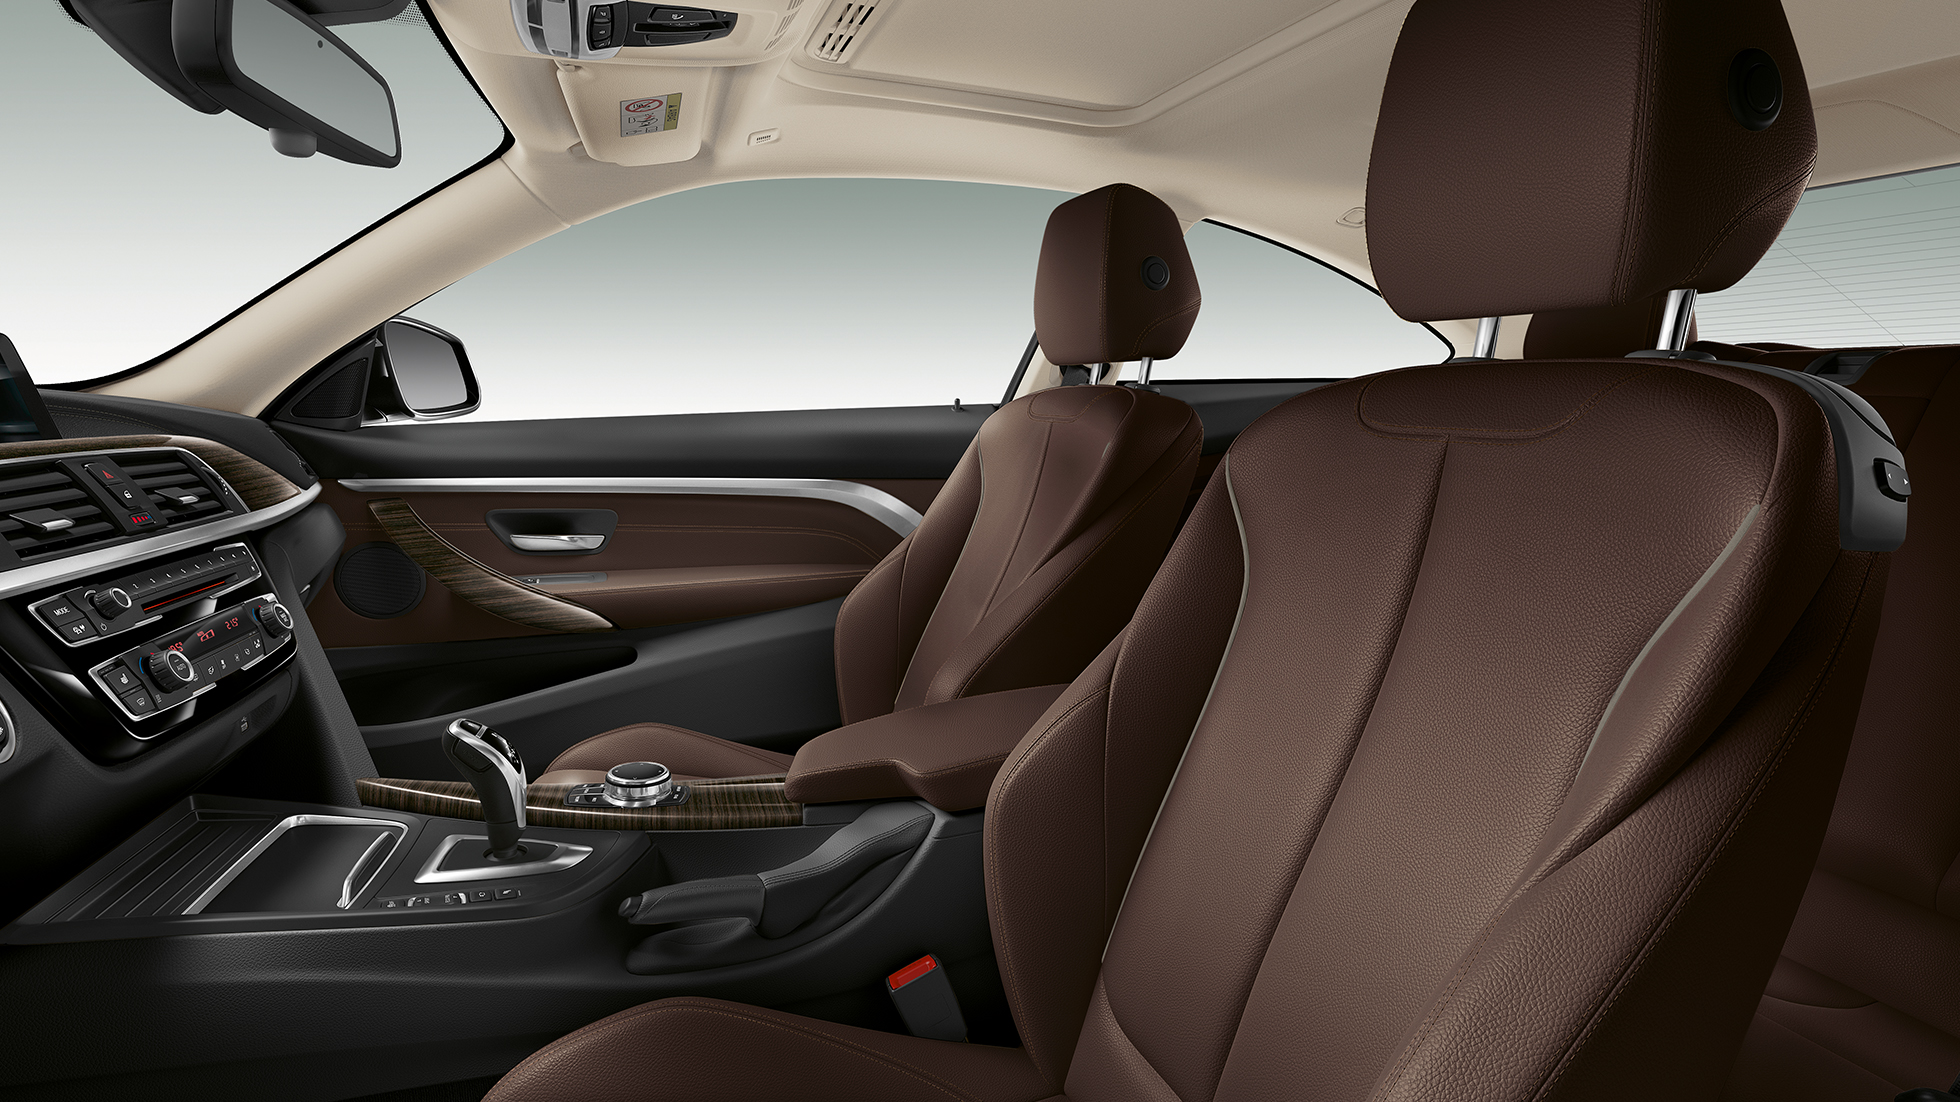 BMW 4 Series Coupé, Model Luxury Line interior